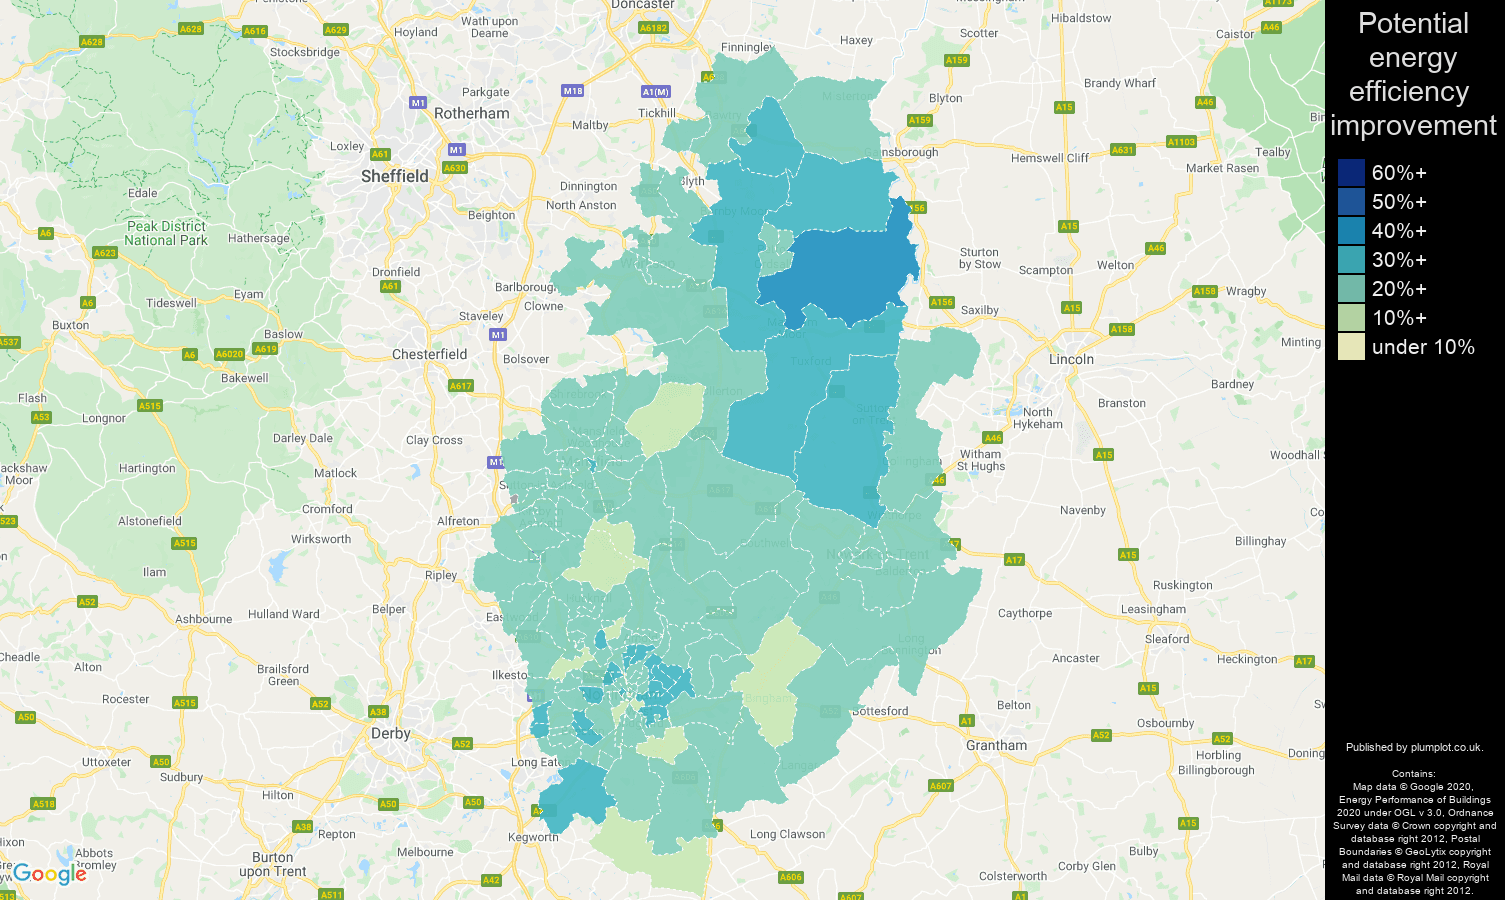 Nottinghamshire map of potential energy efficiency improvement of houses